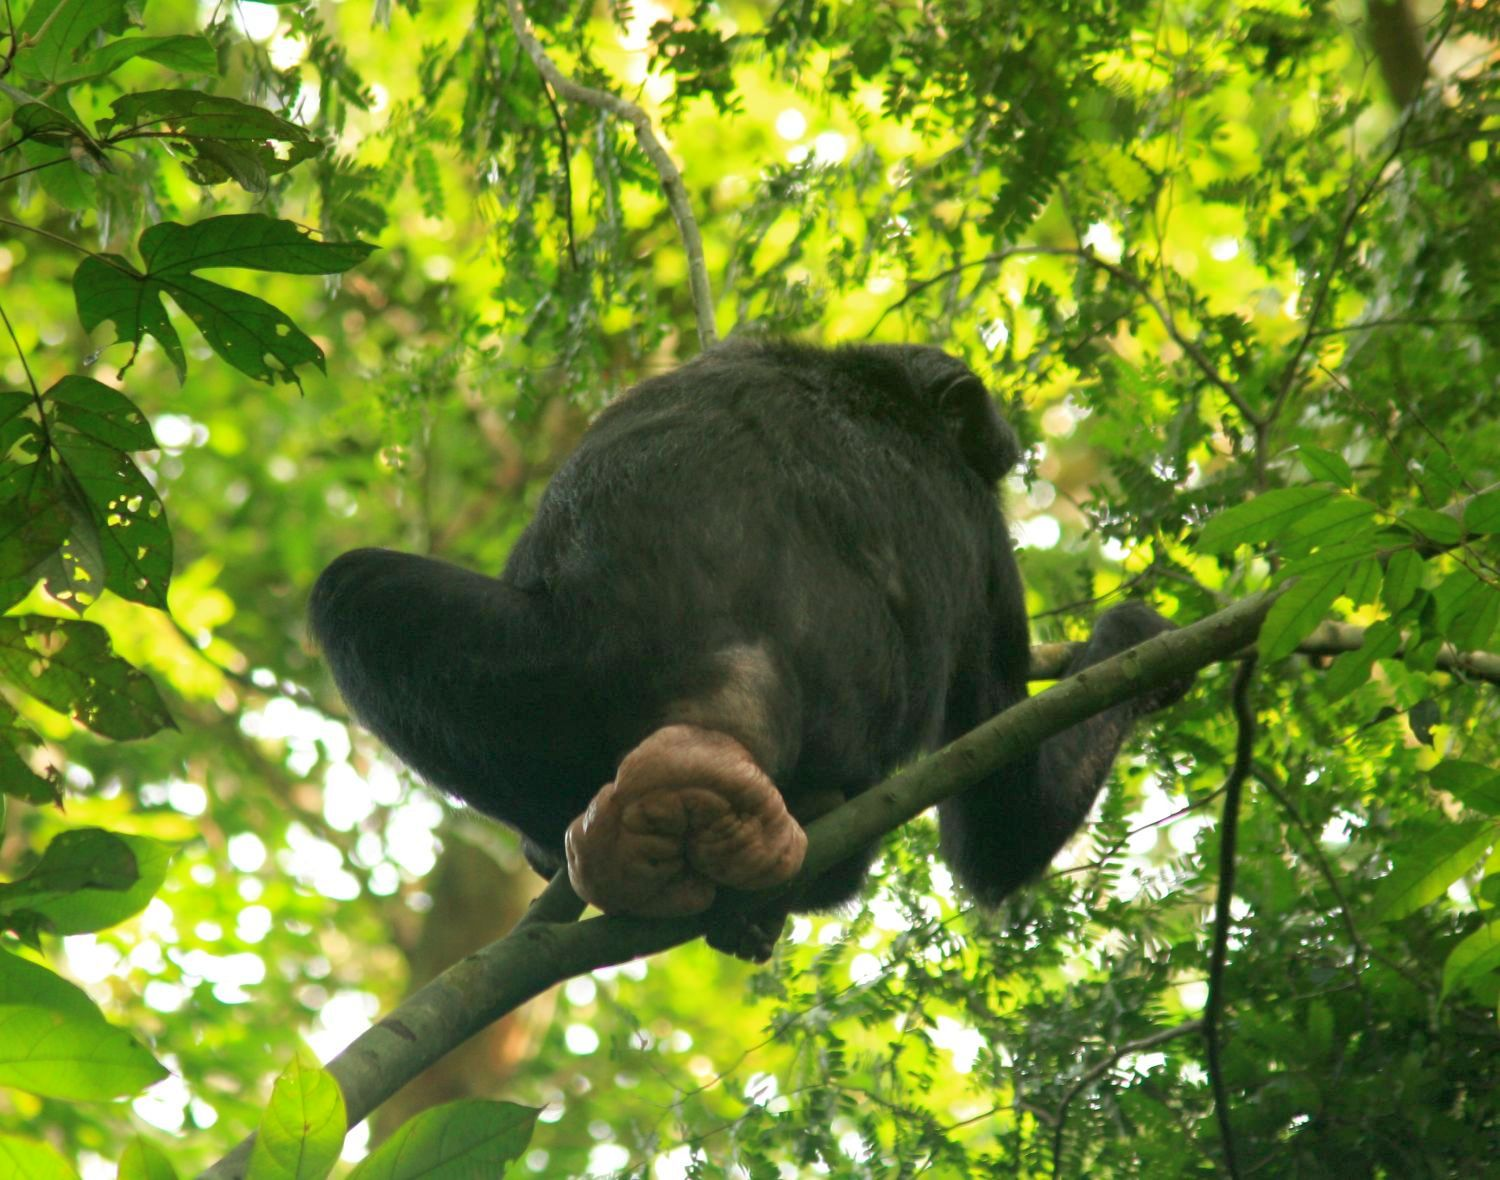 Female bonobo sexual swellings send mixed messages to males